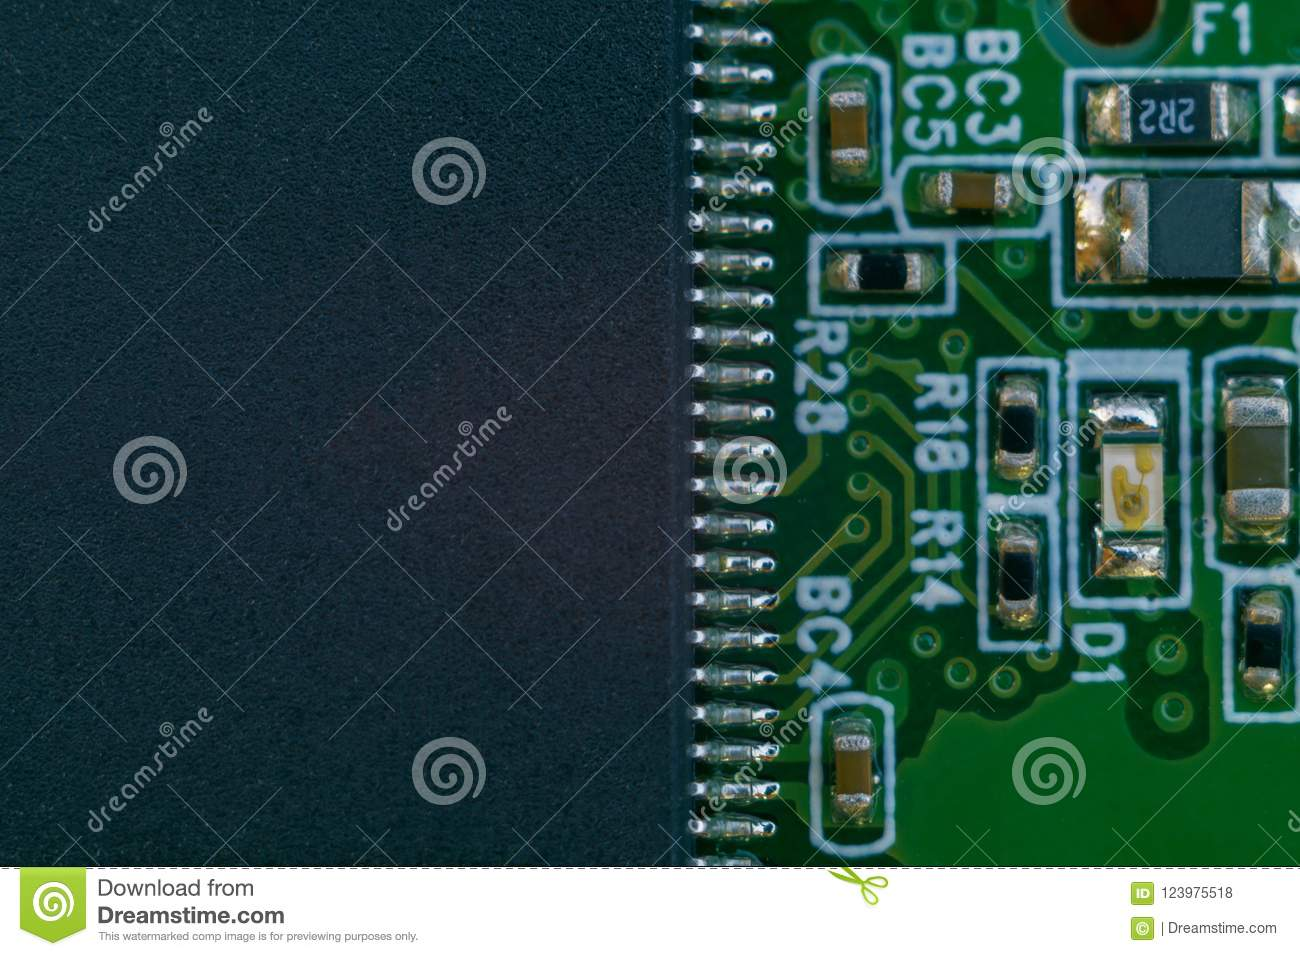 One big digital microscheme on motherboard with many leags